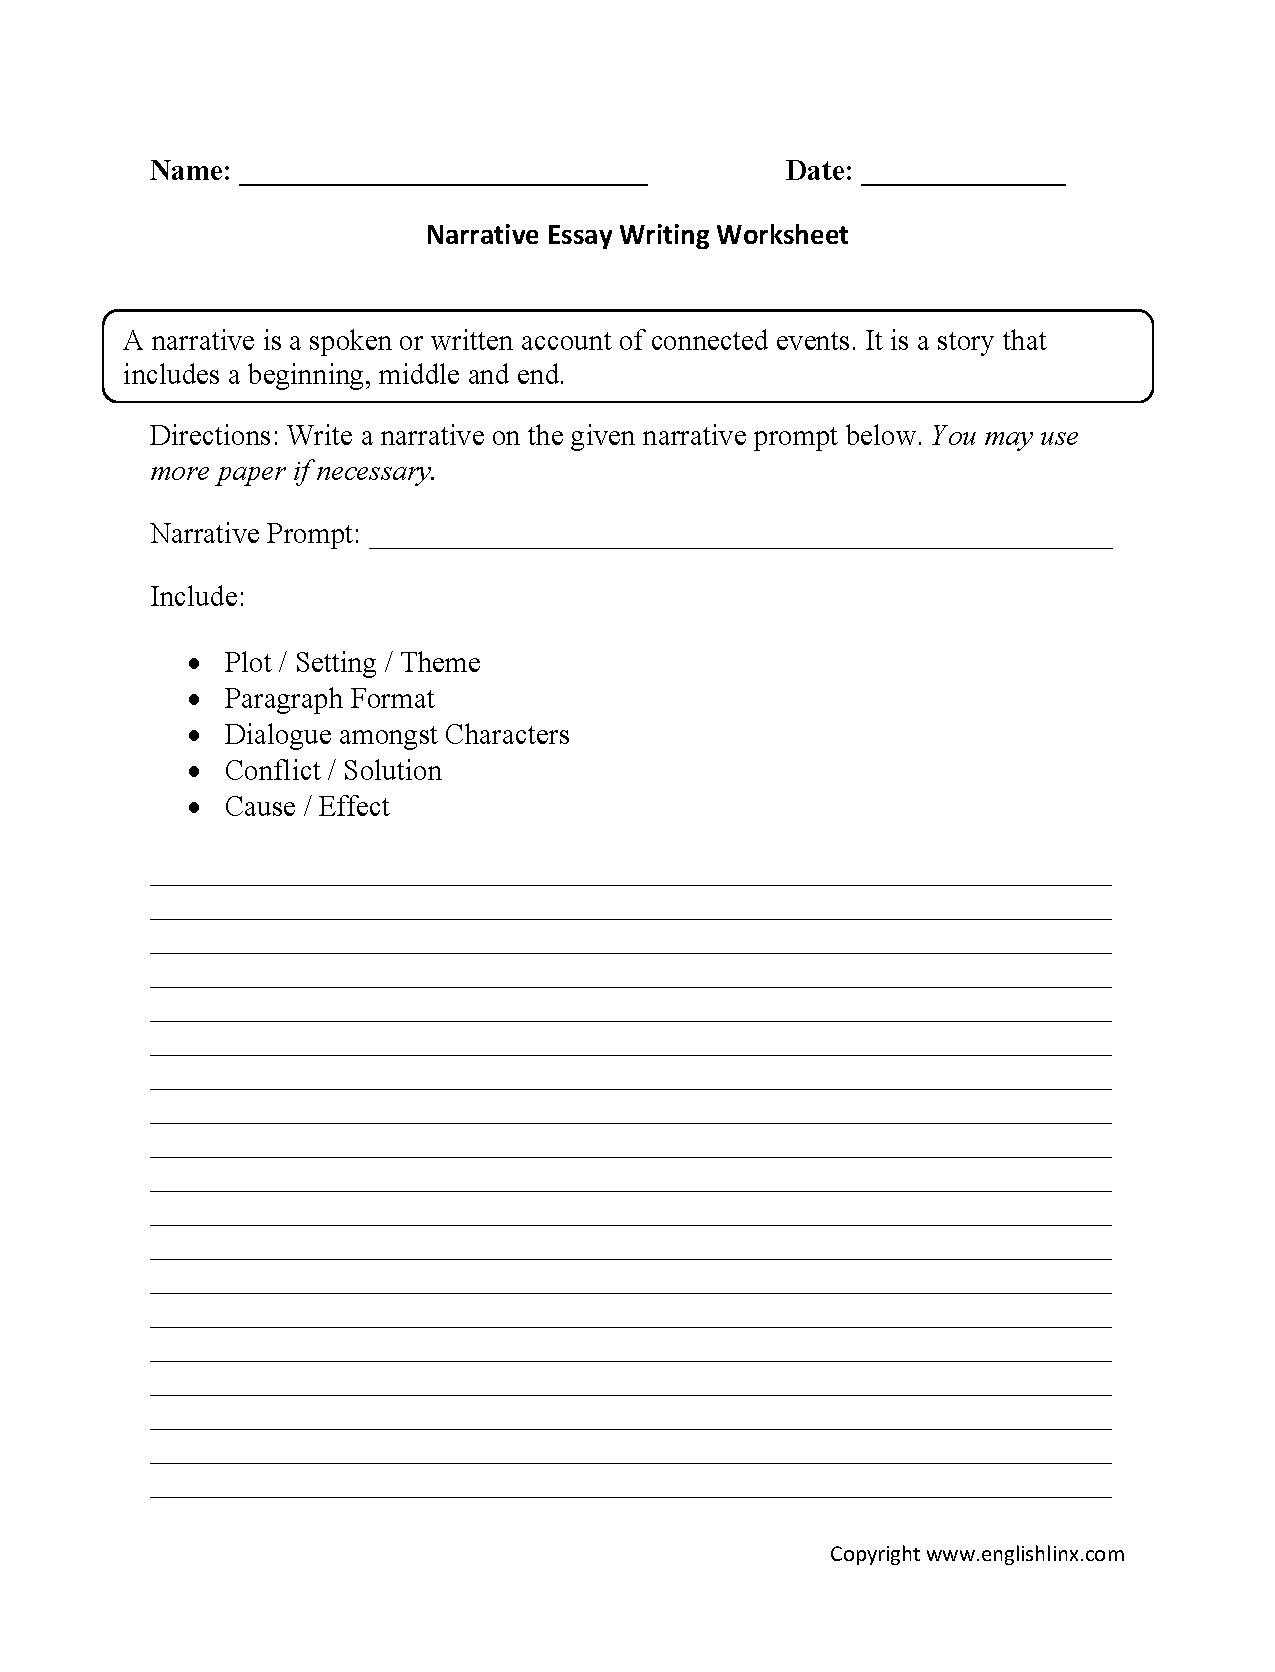 essay worksheets - Yelom.digitalsite.co